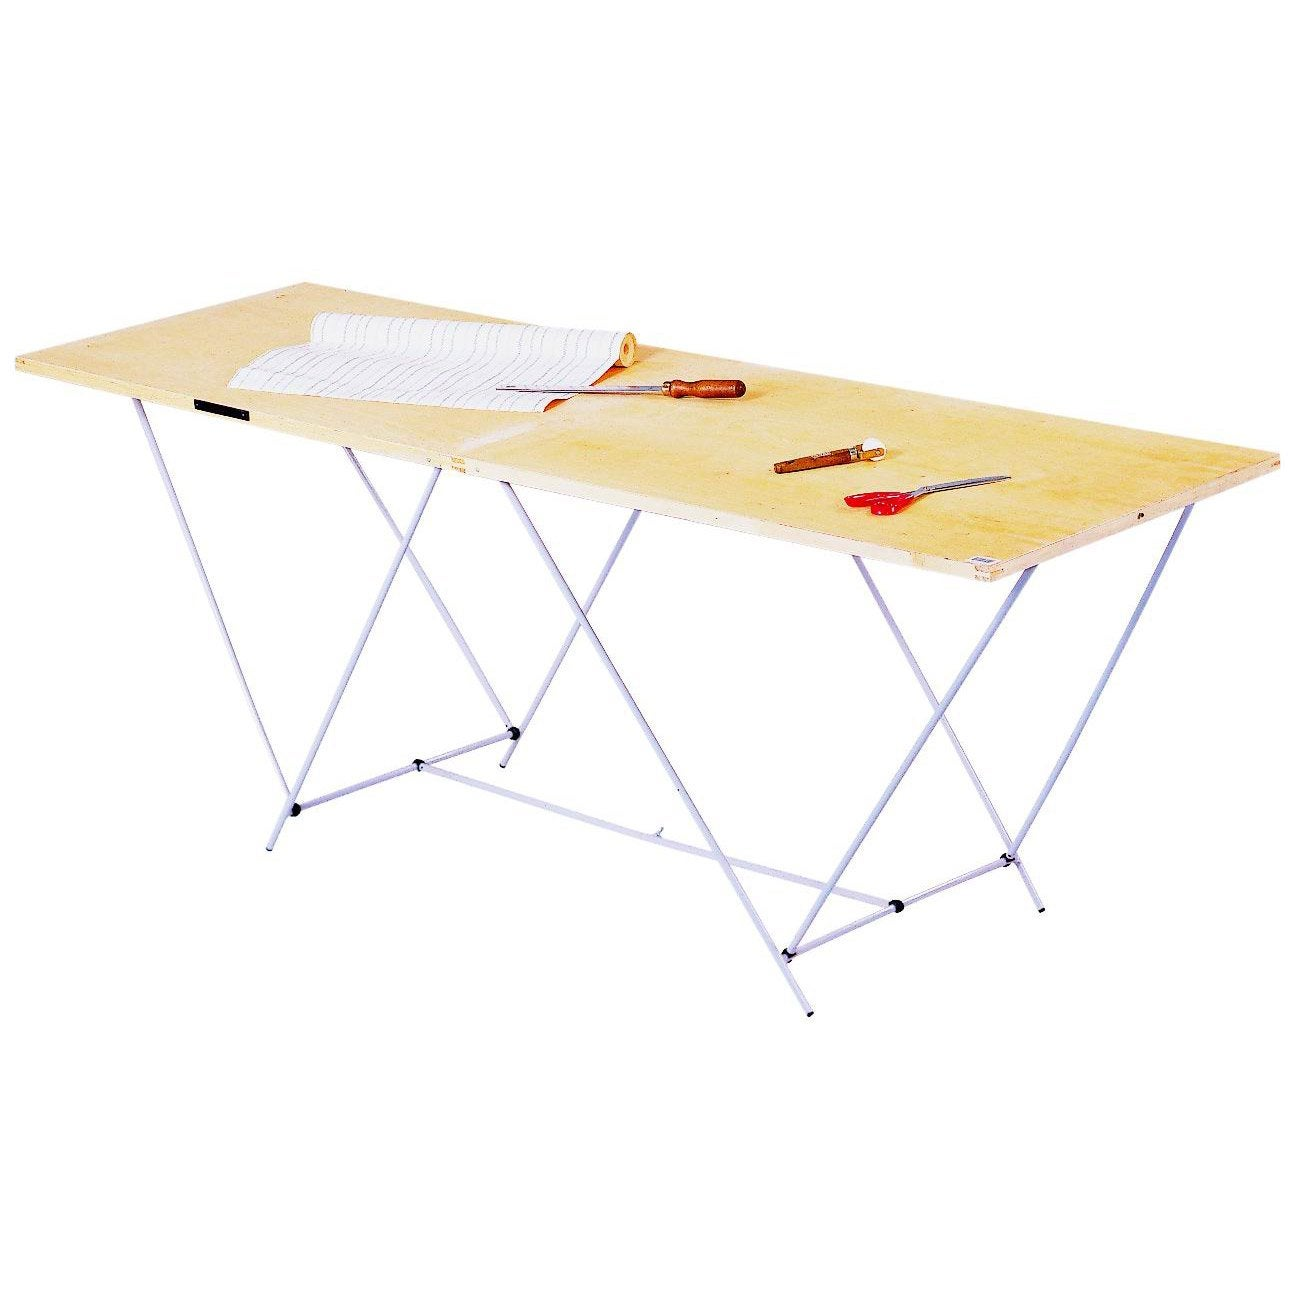 Table tapisser pliante ocai 60 cm x 2 m leroy merlin - Leroy merlin table pliante ...